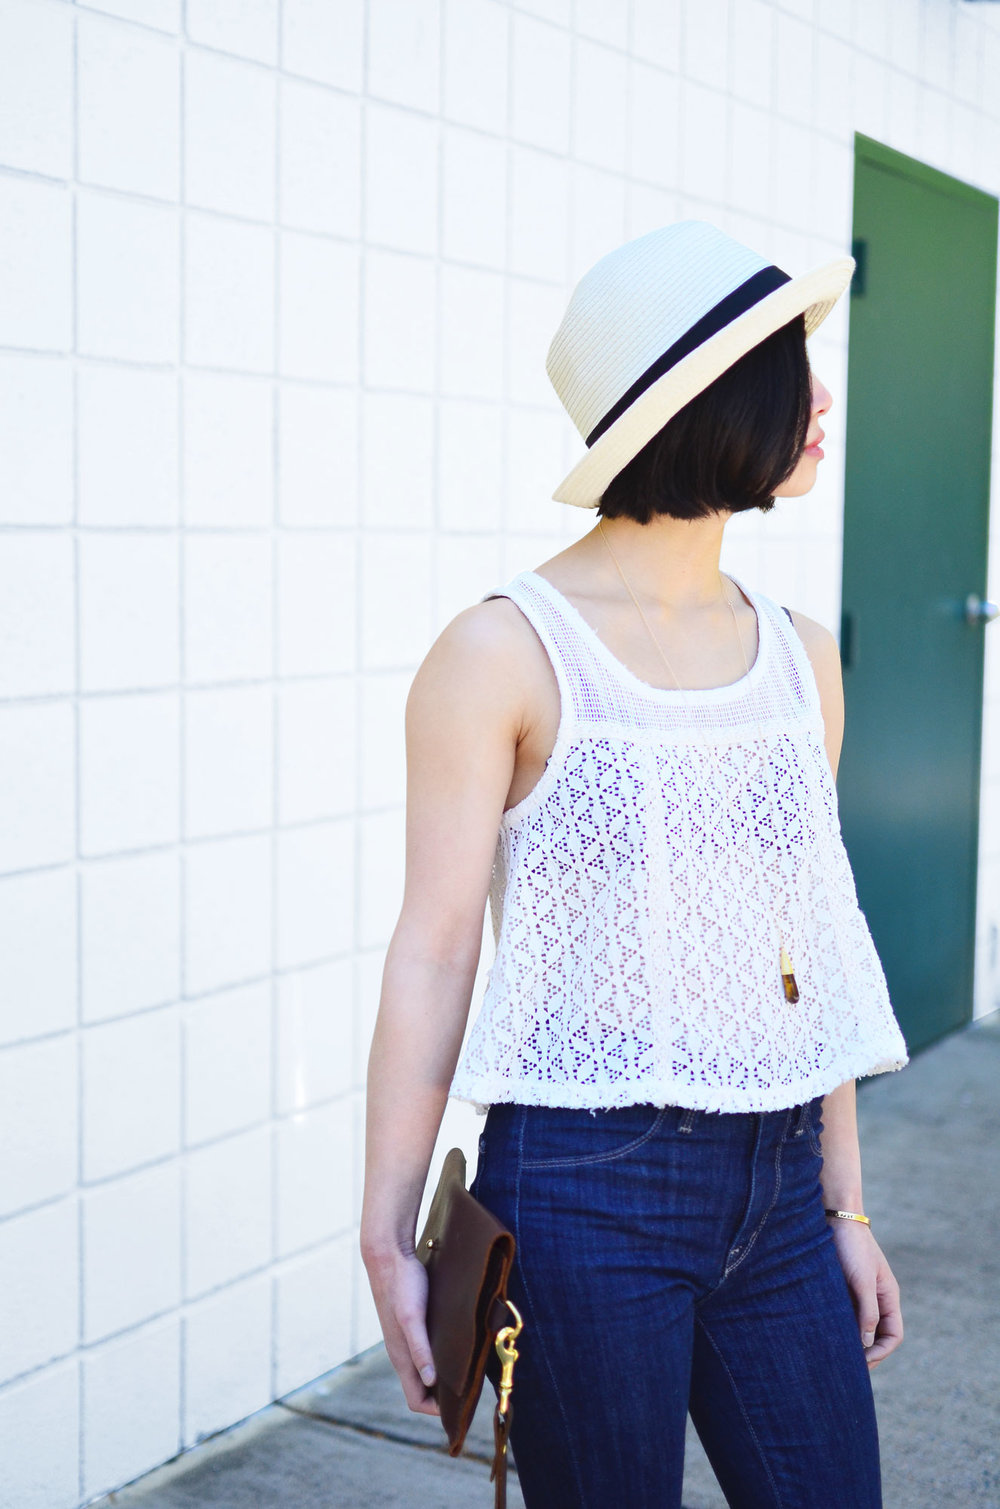 Talula Pelham hat, Free People crochet tank, DTSLD high waisted skinny jeans, Crafts and Love Azul necklace and Mina cuff, Margaret Vera Kodiak clutch